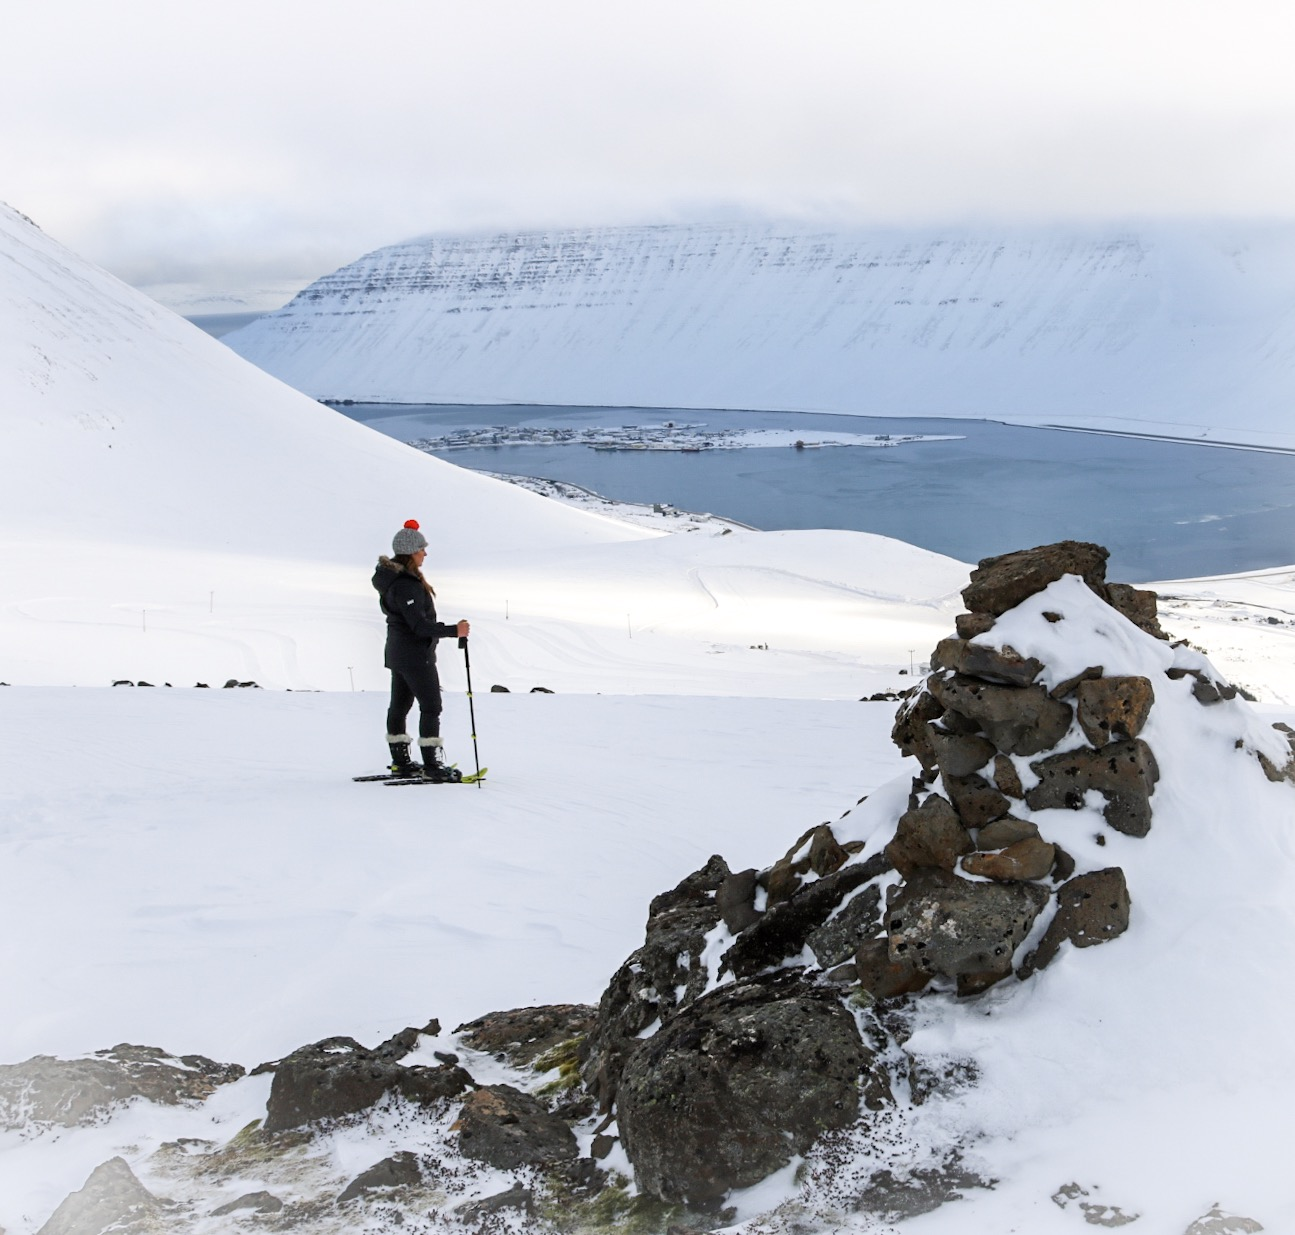 WHAT TO PACK FOR WINTER IN ICELAND